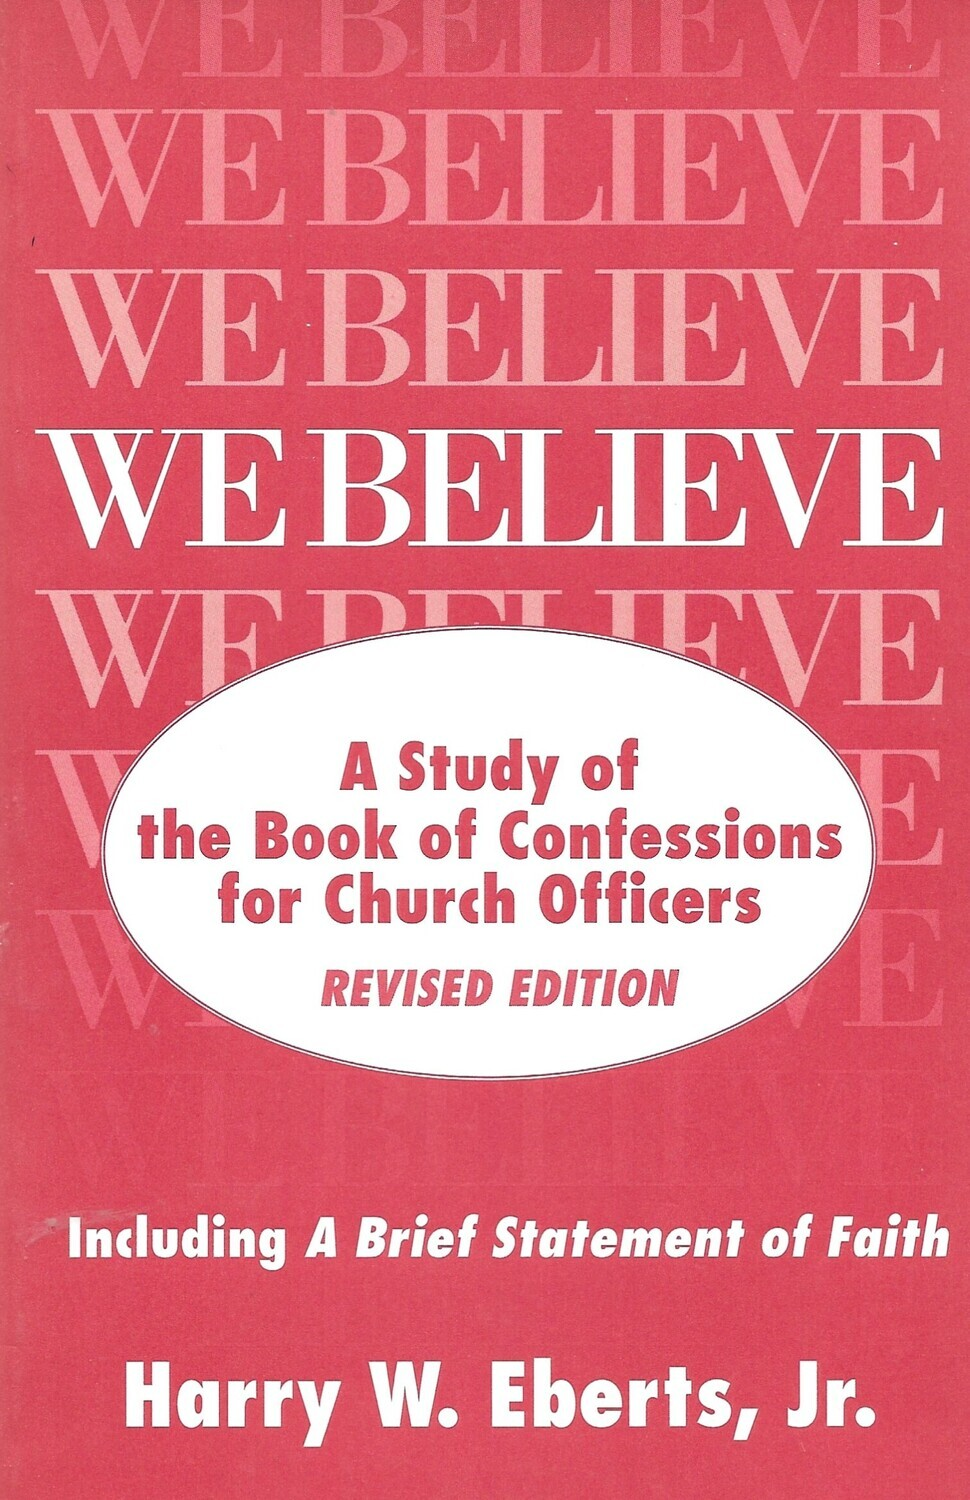 We Believe: A Study of the Book of Confessions for Church Officers